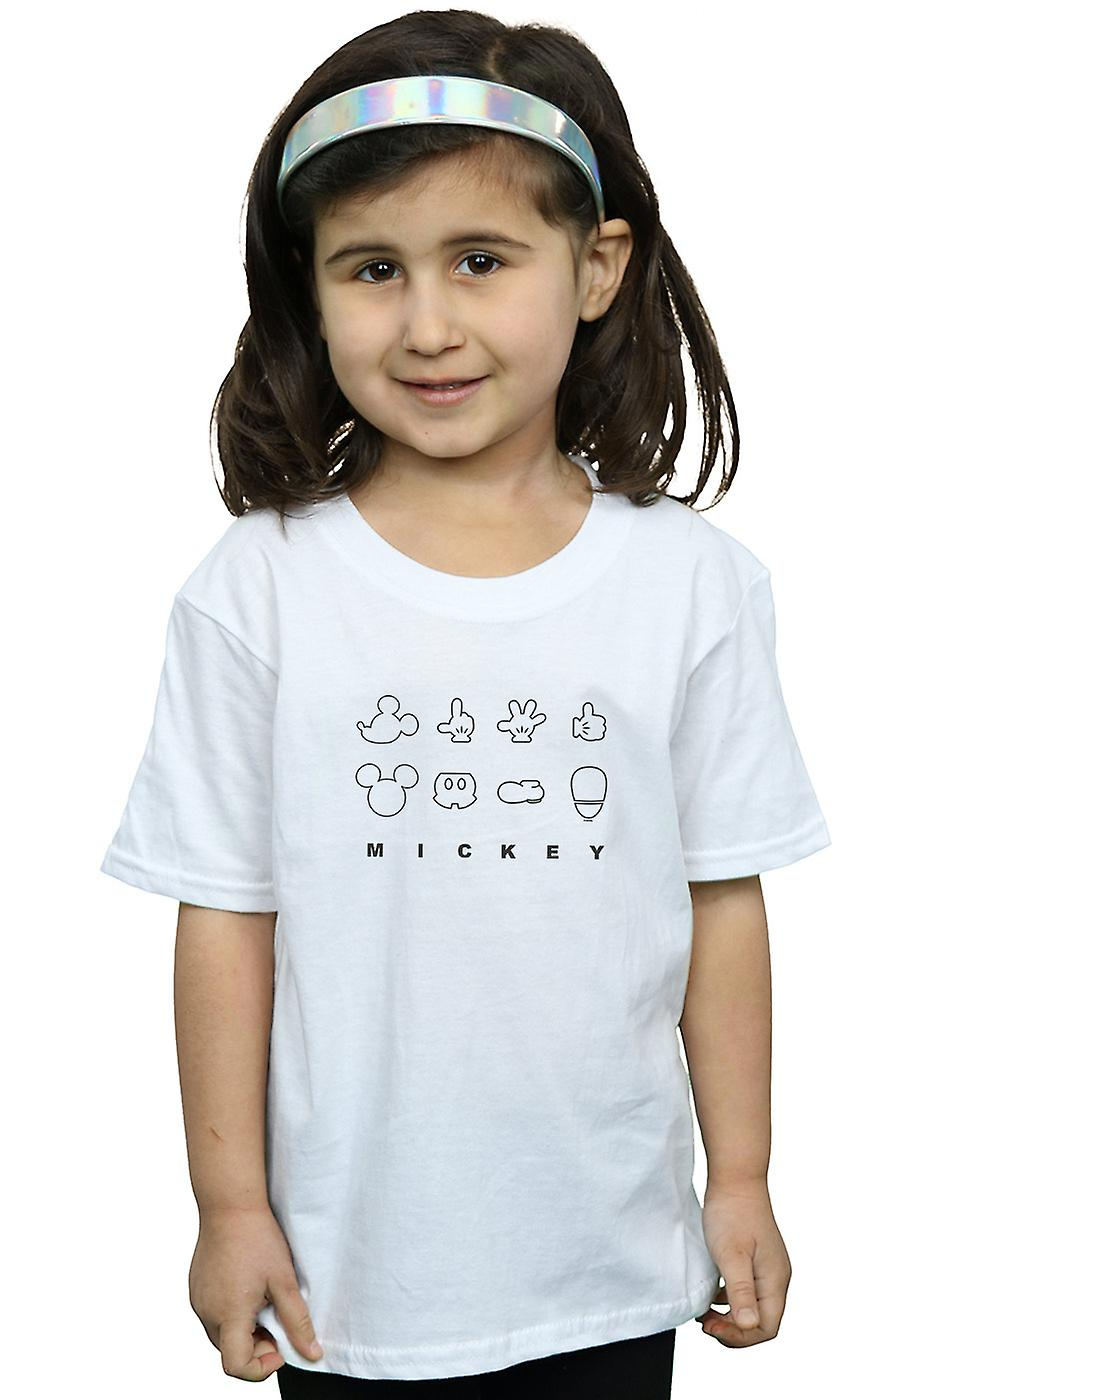 Disney Girls Mickey Mouse Deconstructed T-Shirt